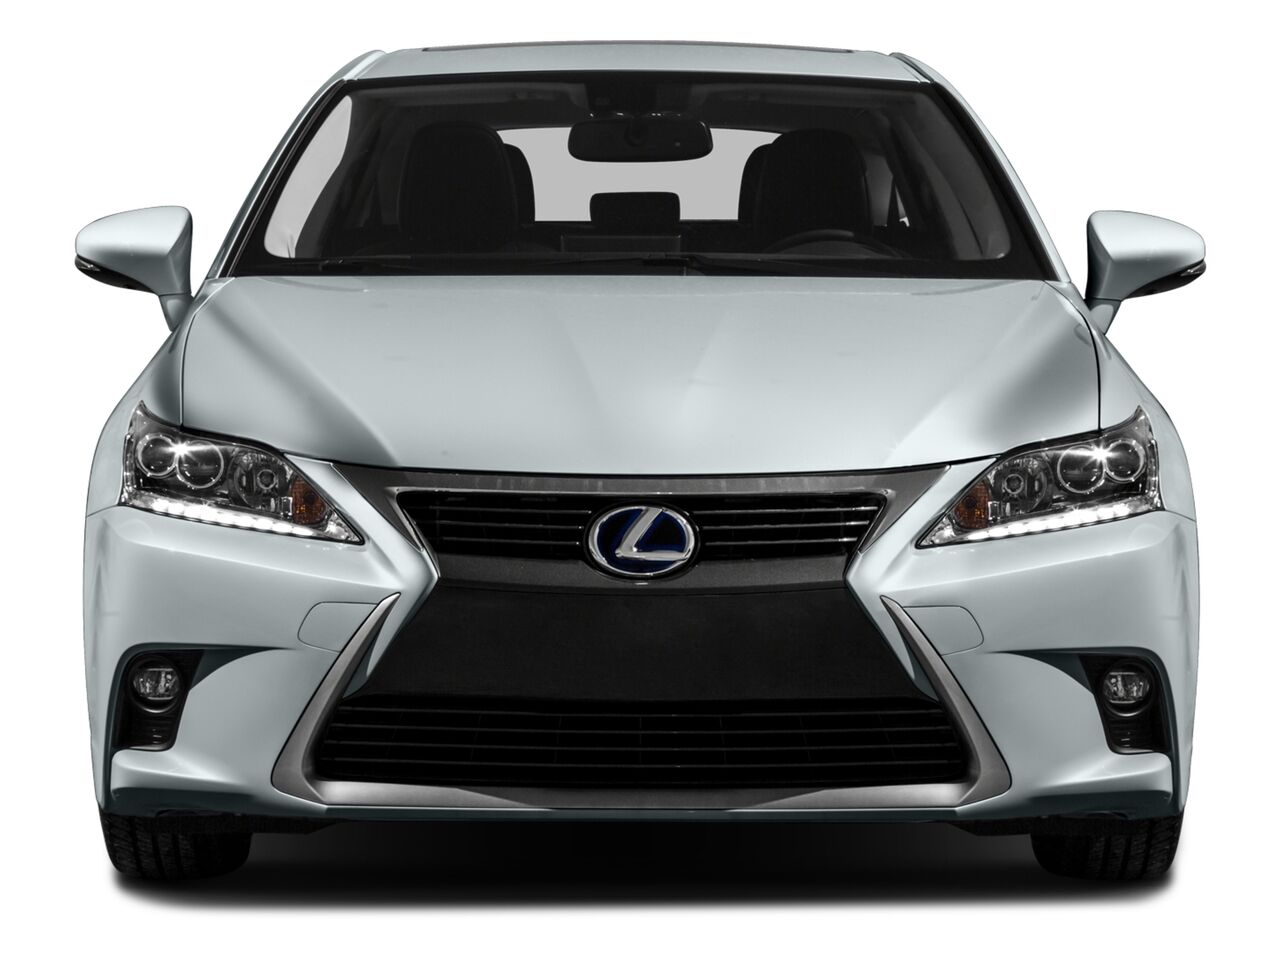 2016 Lexus CT 200h Lee's Summit MO